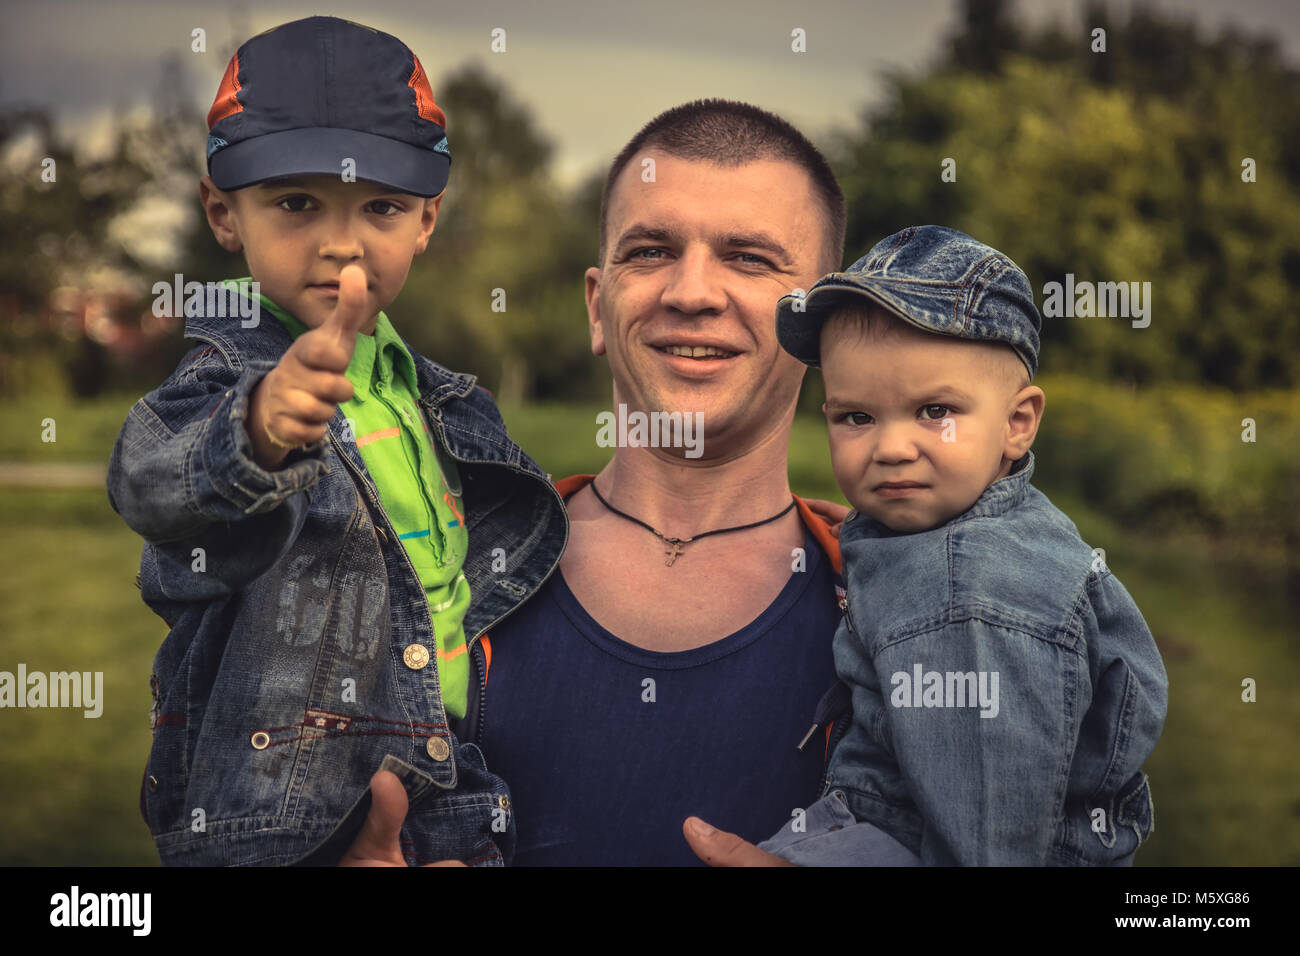 Masculine father sons family lifestyle portrait concept happy paternity - Stock Image